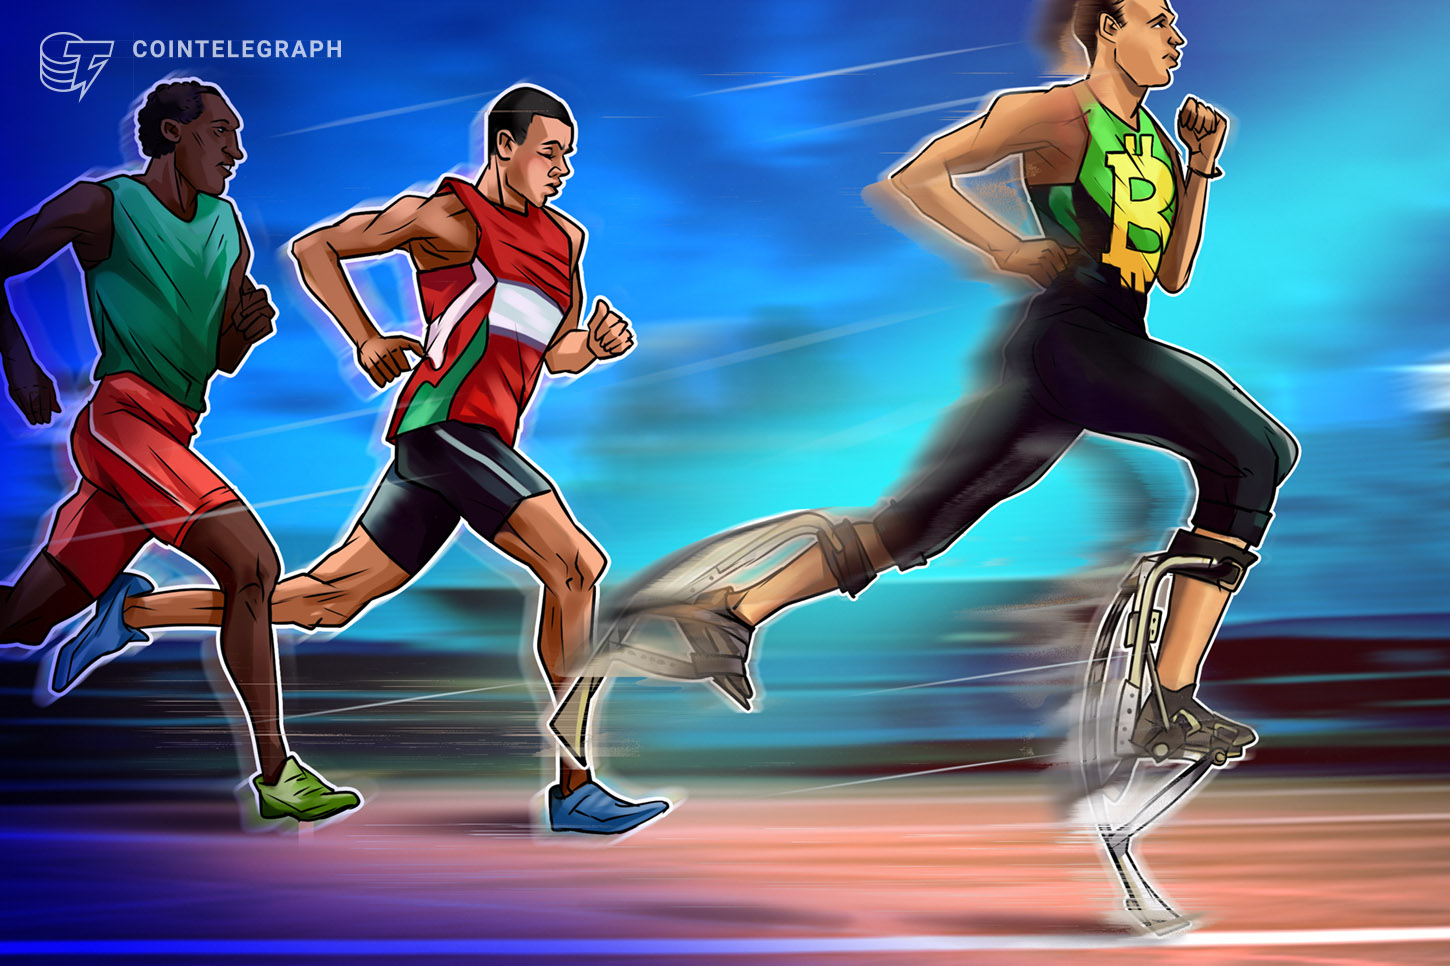 Bitcoin price hits new all-time high as crypto market matures - Cointelegraph